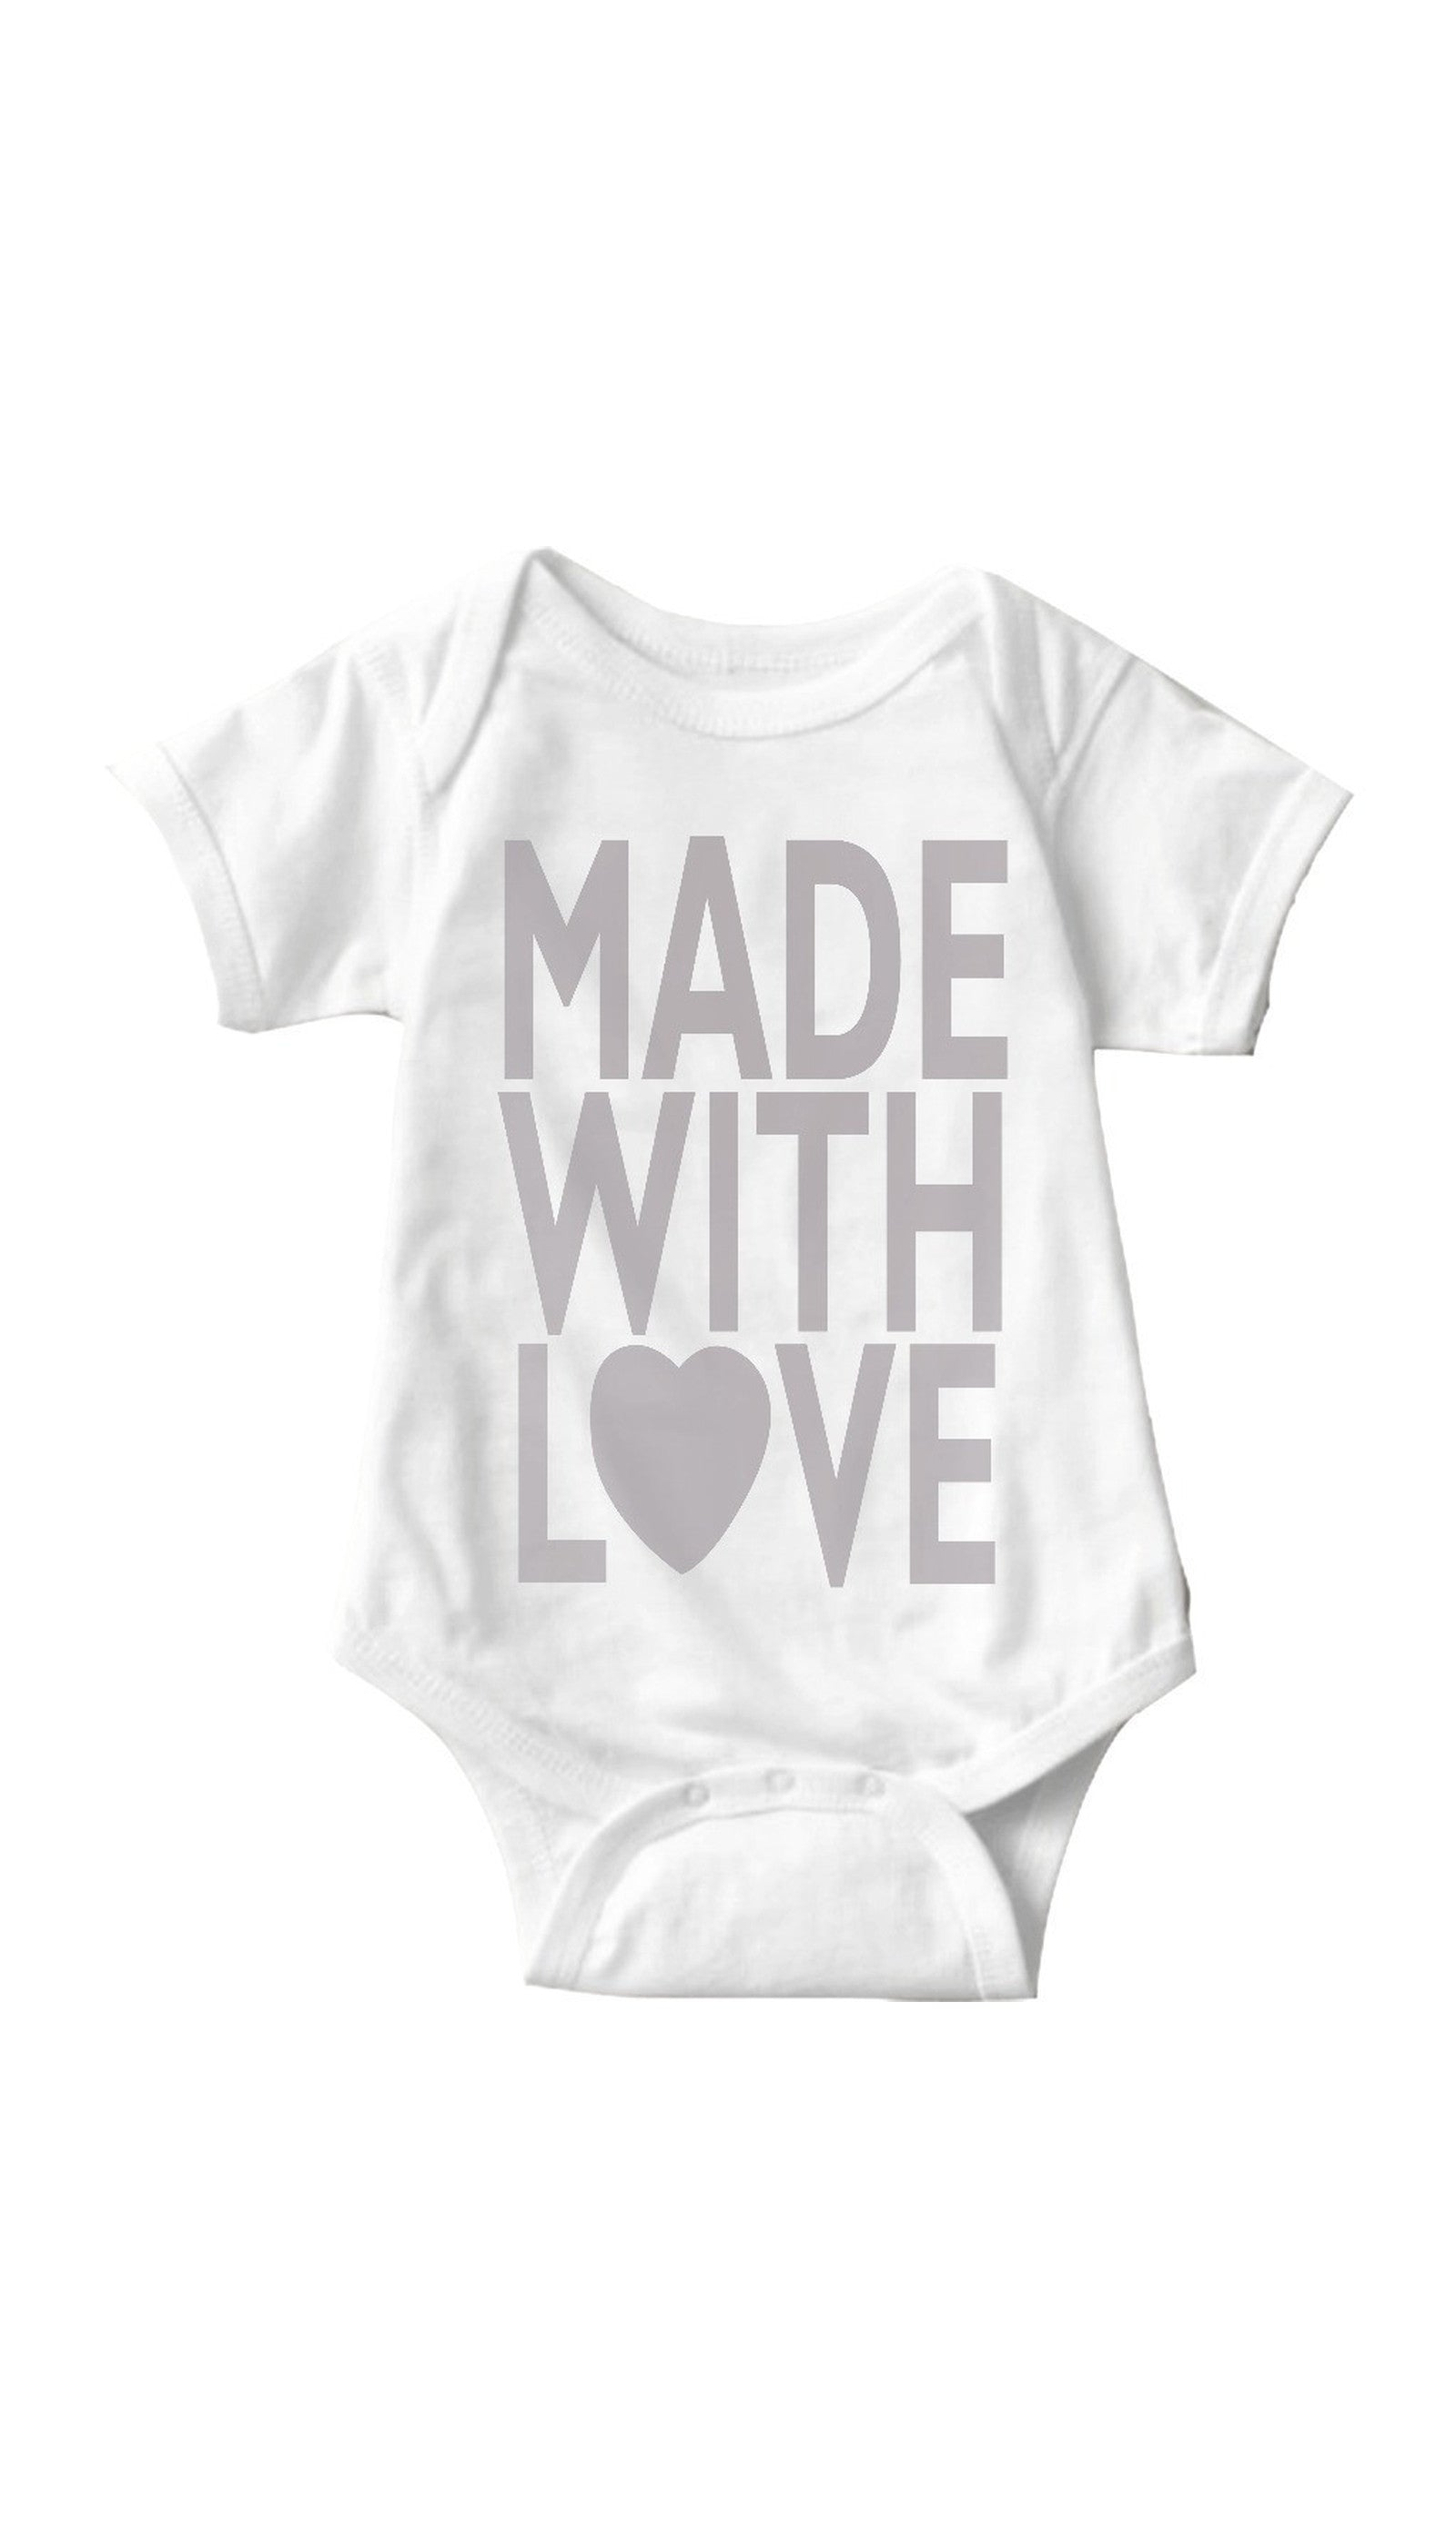 04c3ad67403 Made With Love White Baby Onesie